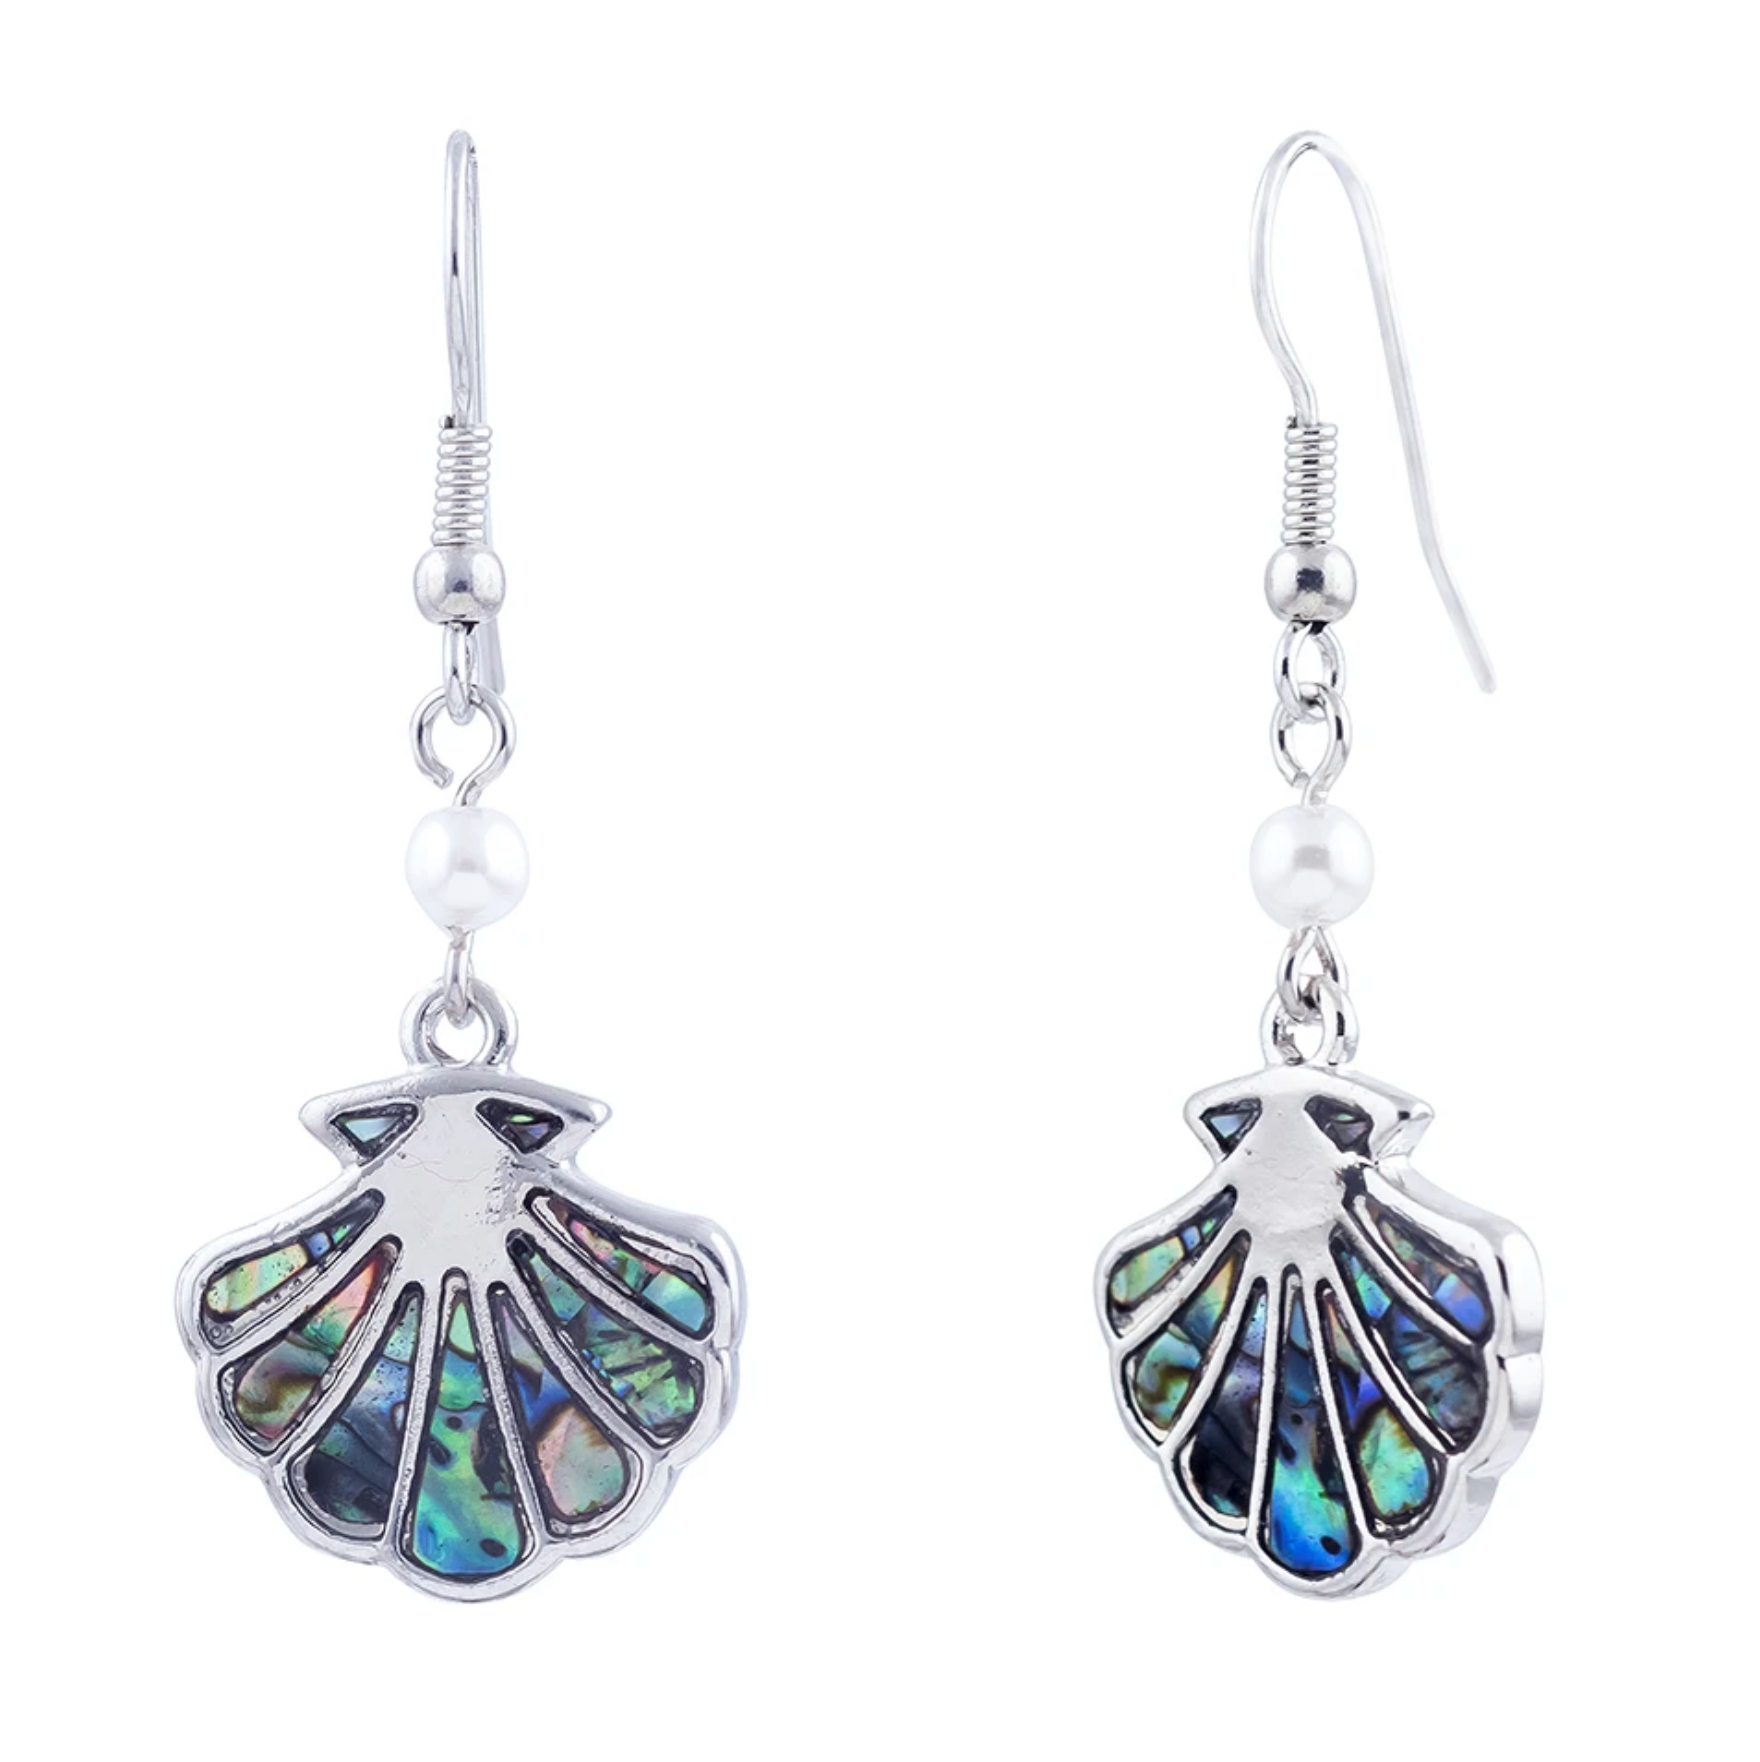 Byzantium Paua Sea Shell Earrings P243